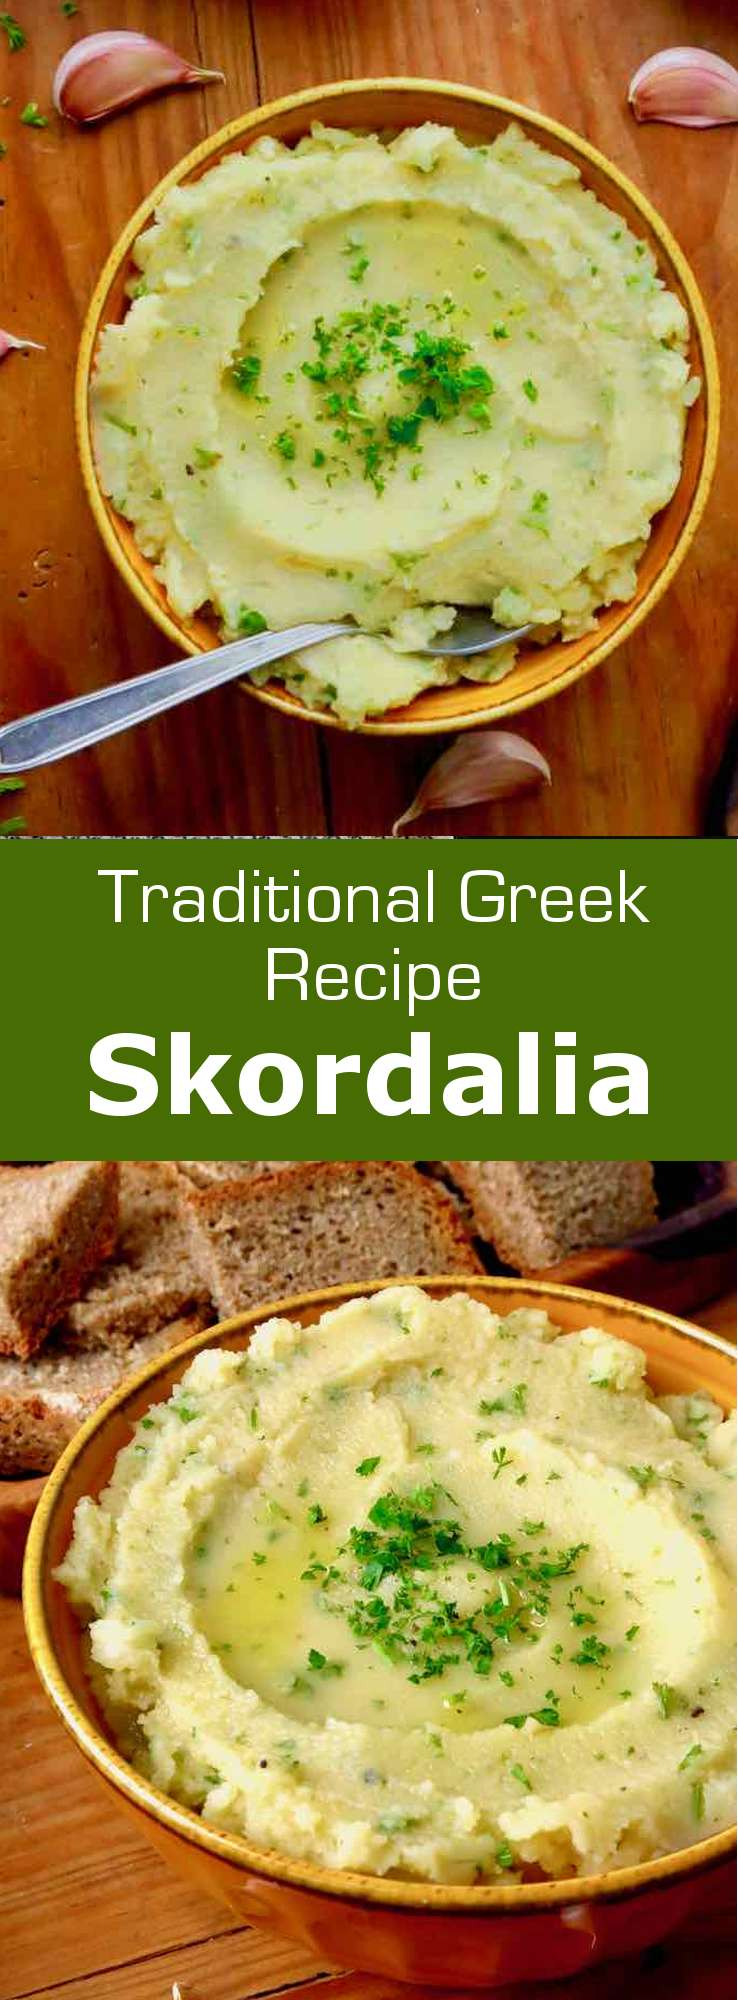 Skordalia, skordhalia or skorthalia (σκορδαλιά) is a traditional Greek mezze or side dish prepared with garlic and mashed potatoes. #Greece #GreekCuisine #GreekFood #GreekRecipe #MediterraneanCuisine #WorldCuisine #196flavors